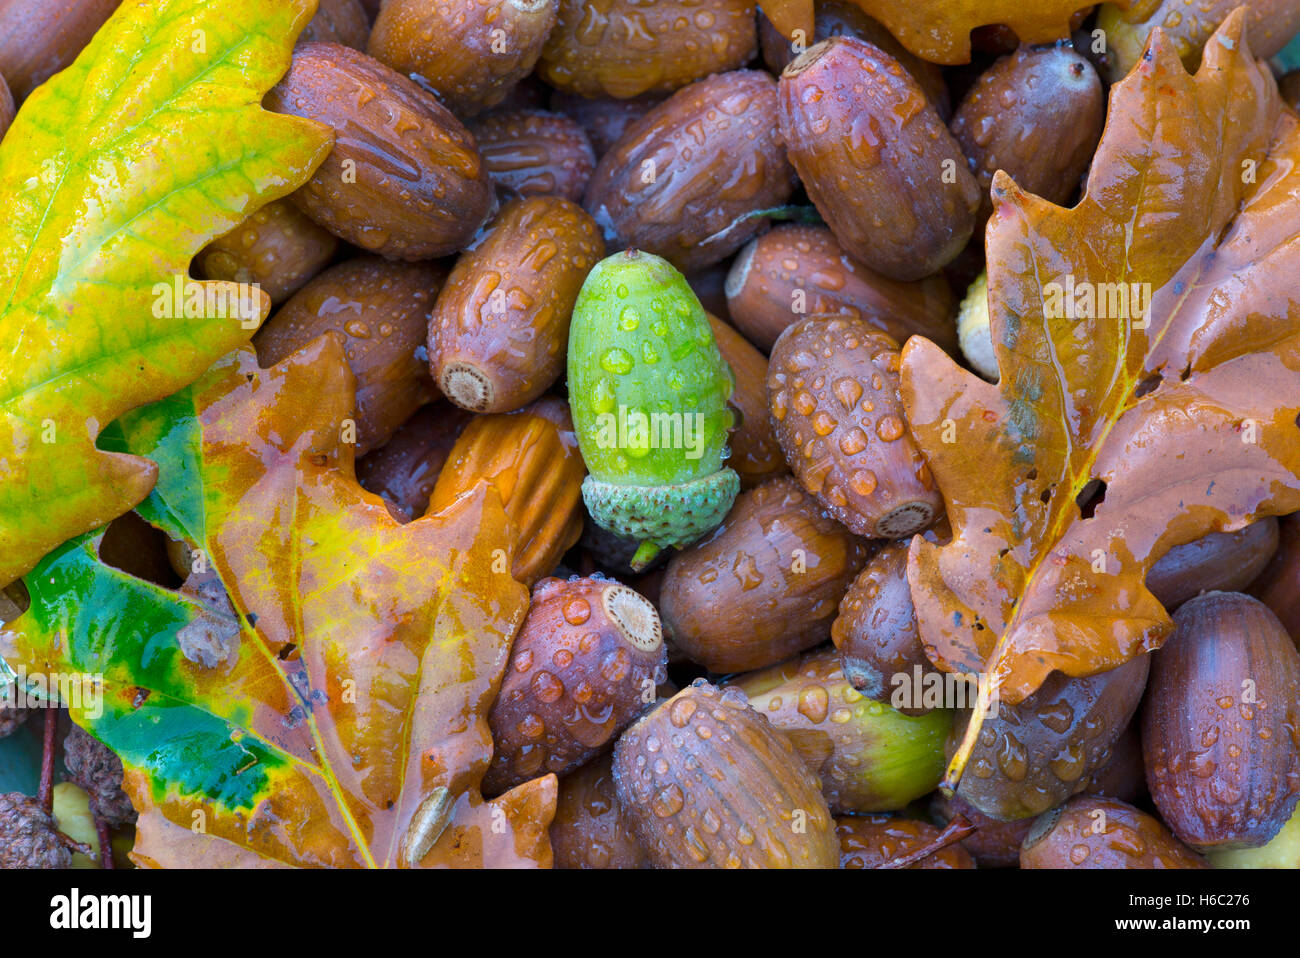 Oak Quercus robur Fallen Acorns in autumn - Stock Image